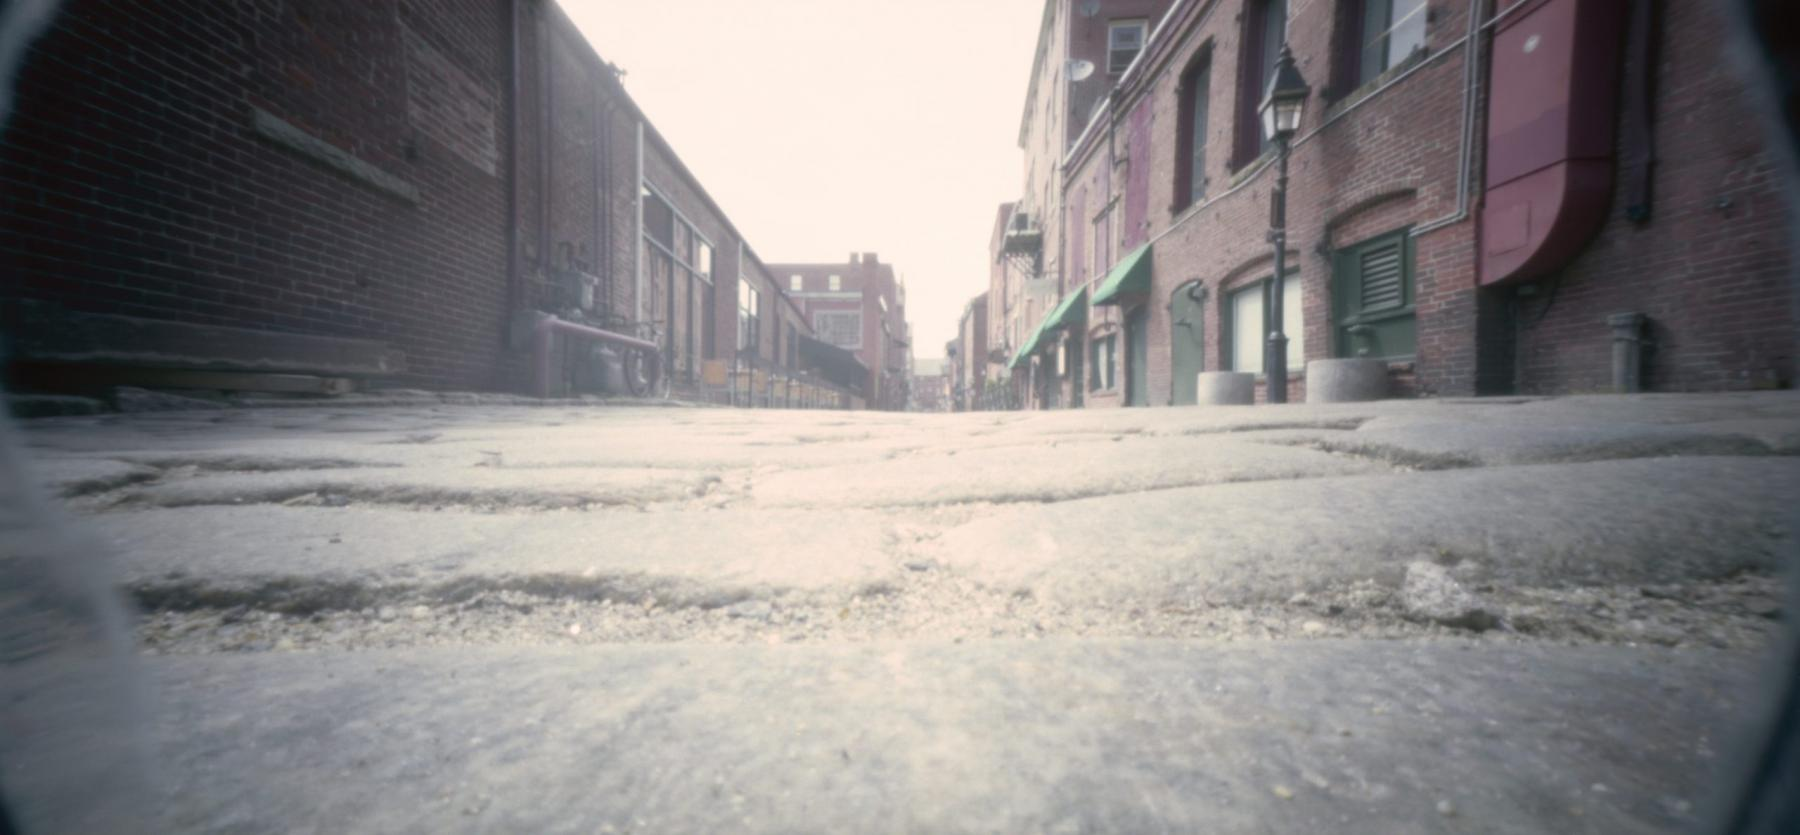 pano-pinhole238-scaled